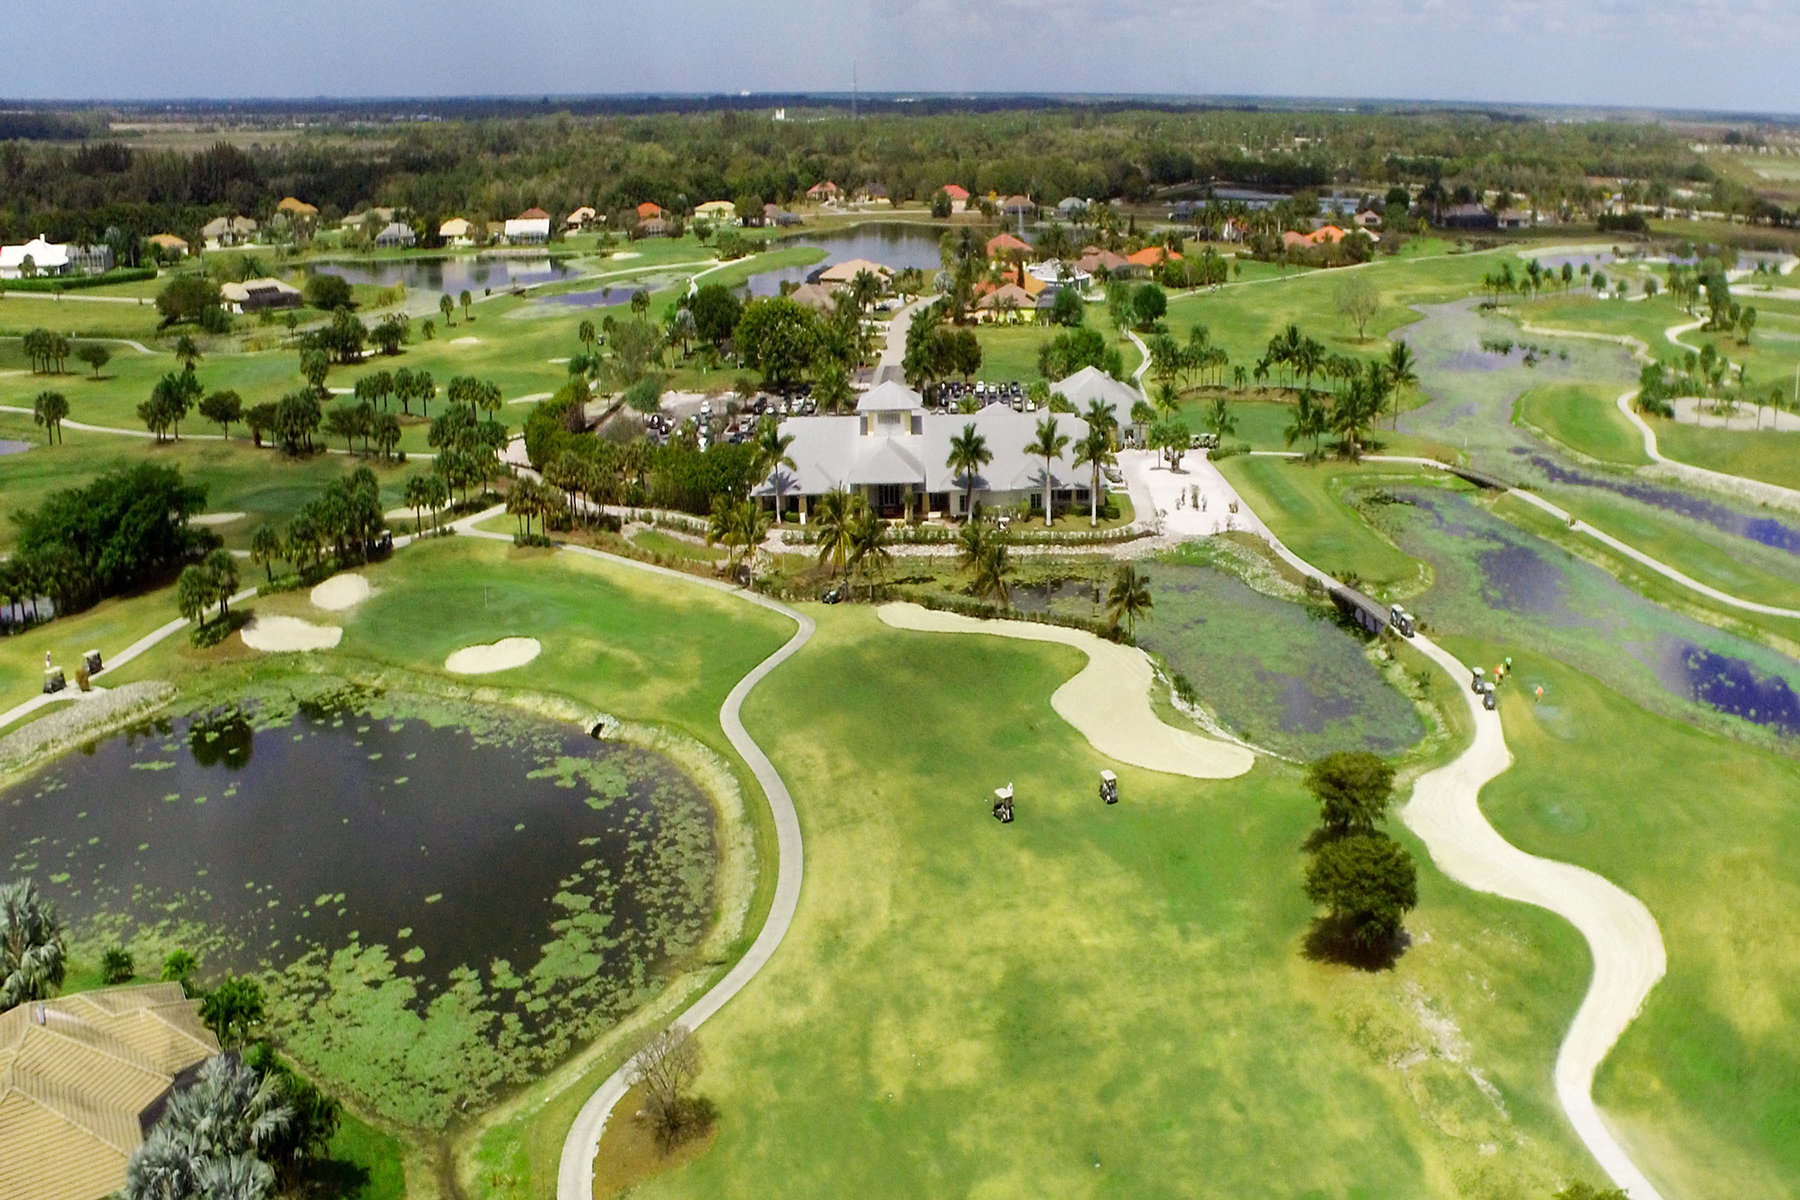 Land for Sale at ROYAL PALM GOLF ESTATES 18025 Sandtrap Dr, Naples, Florida 34114 United States